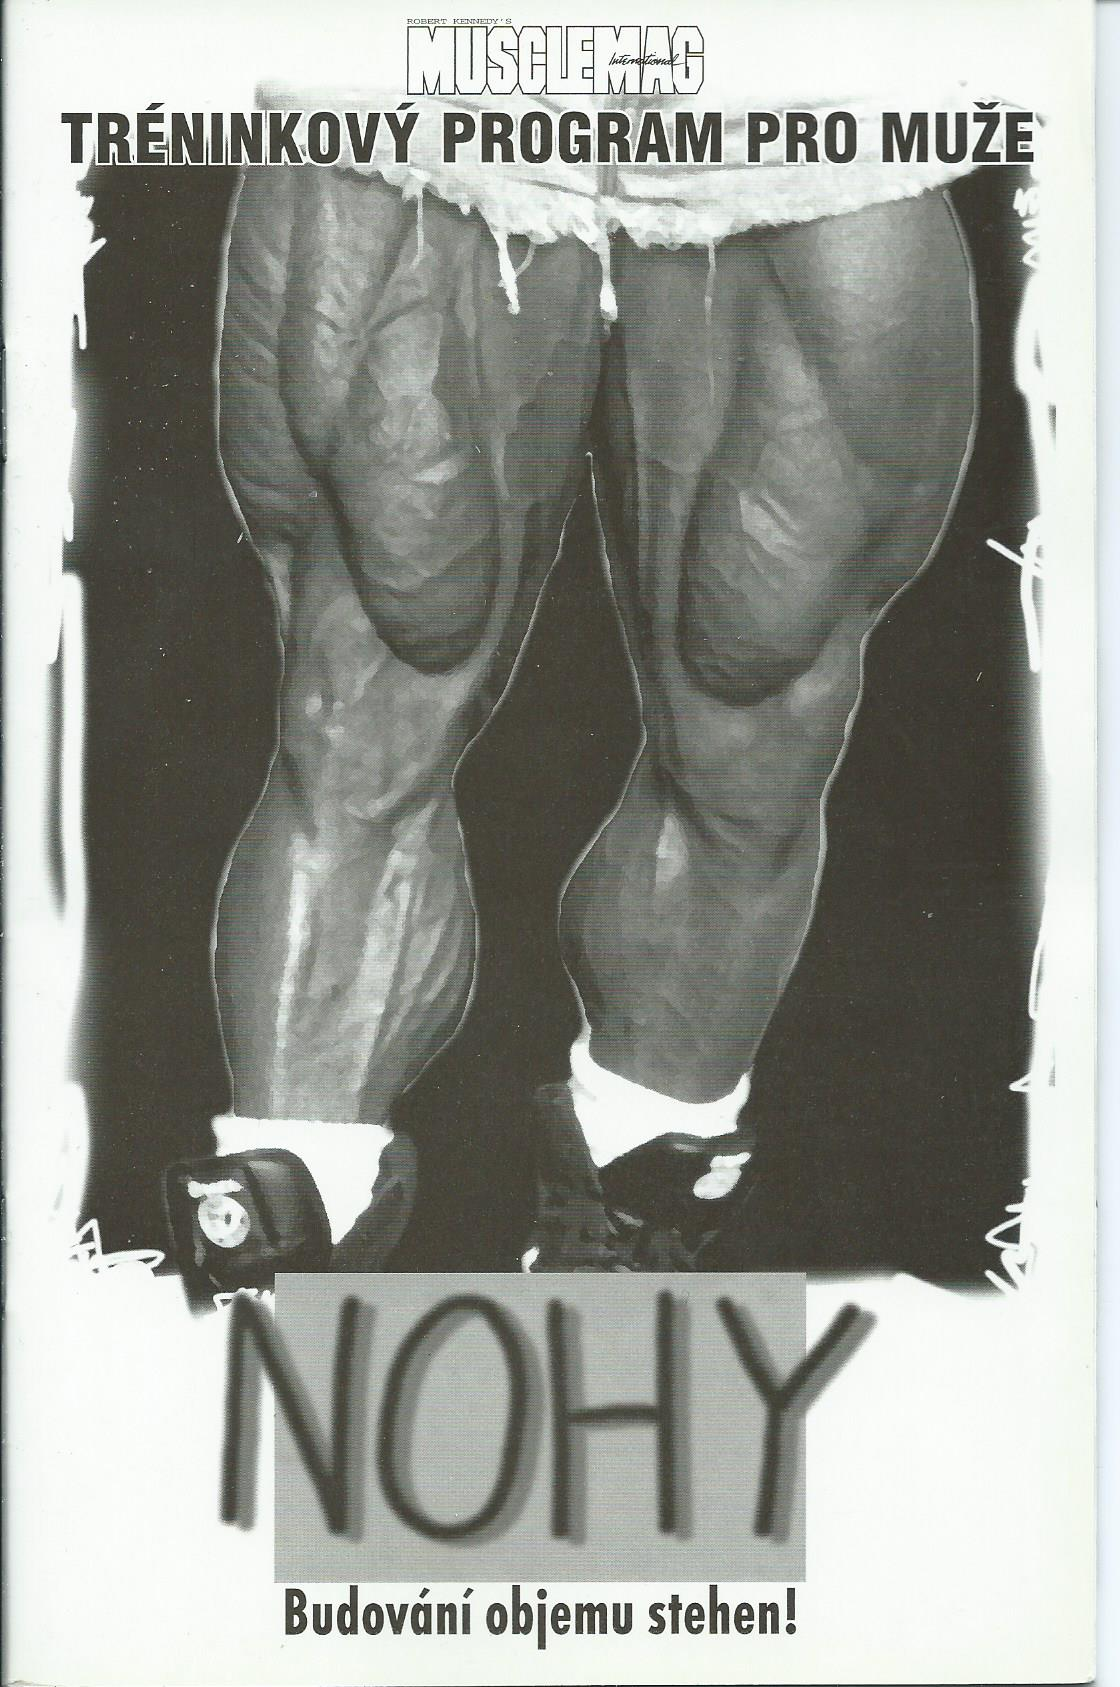 Musclemag - Nohy